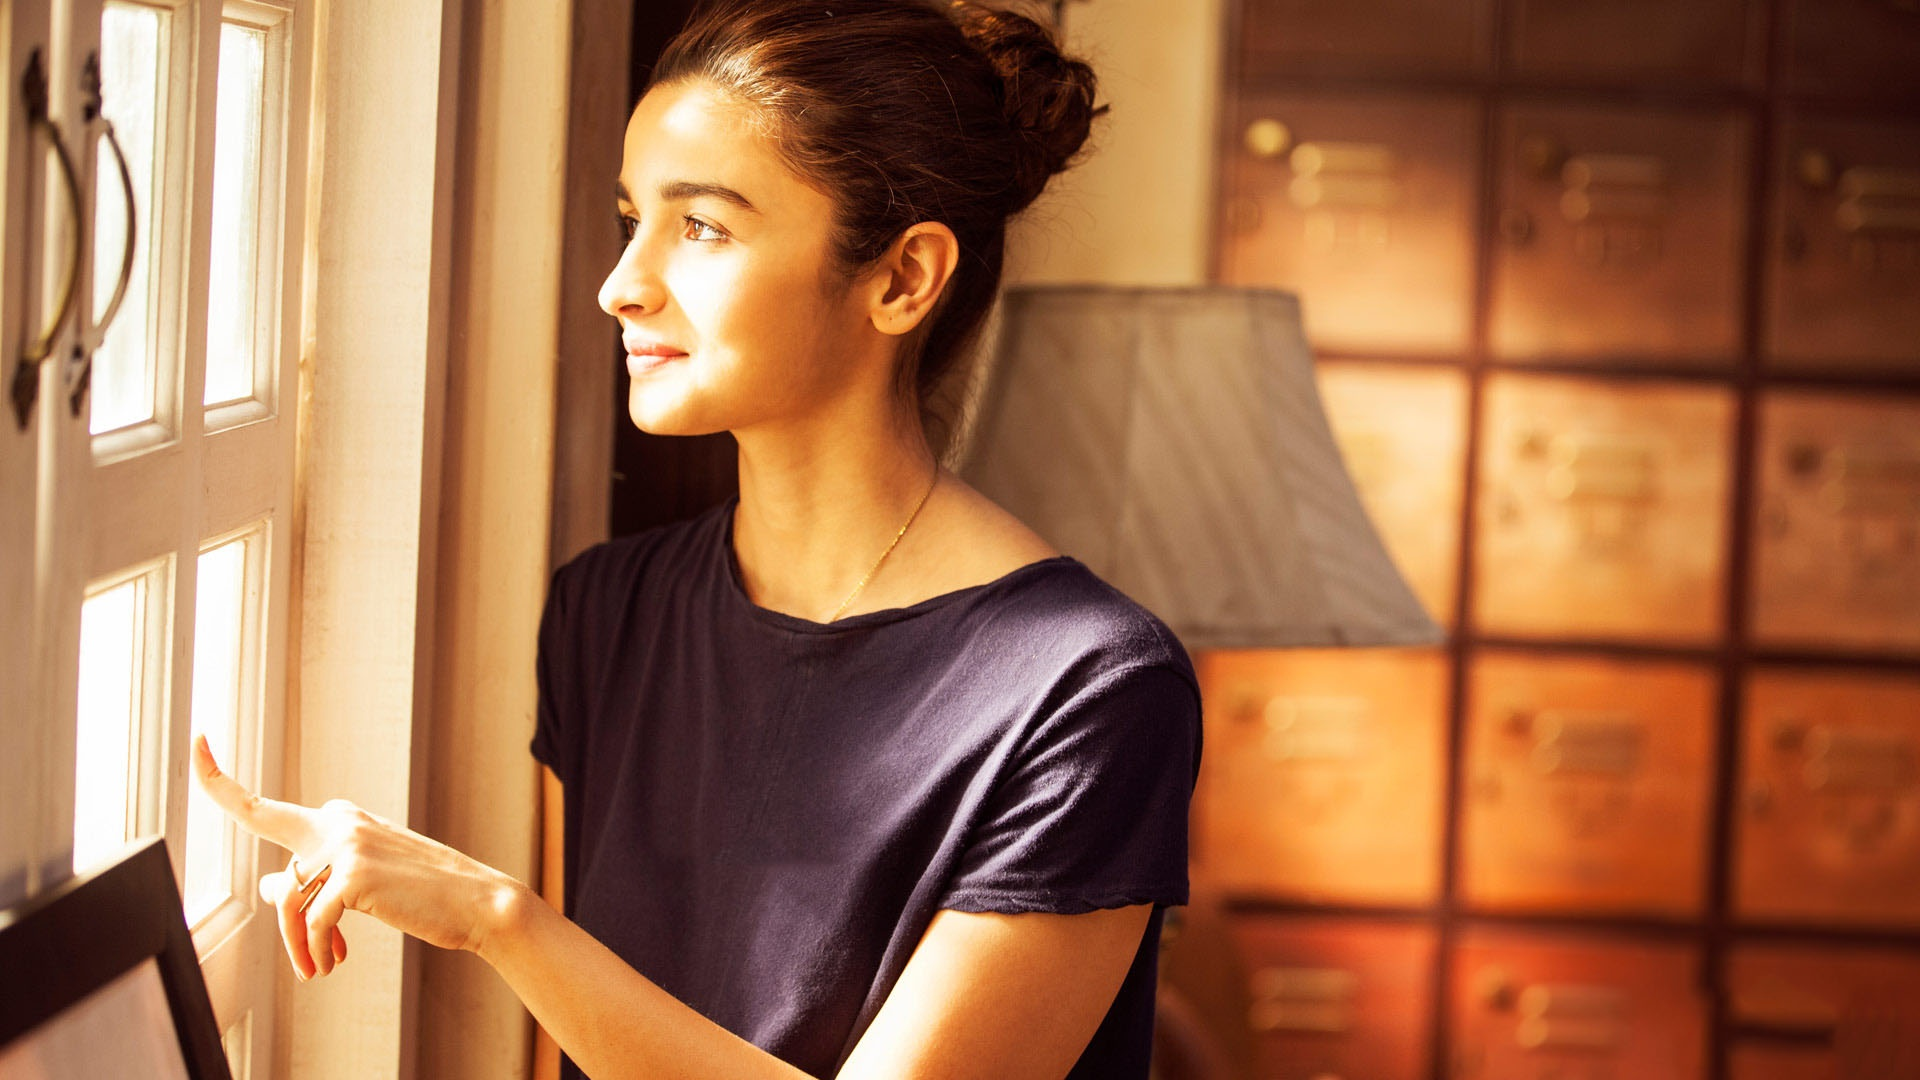 Alia Bhatt Wallpapers Download 1080p HD Photos Of Alia Bhatt 1920x1080